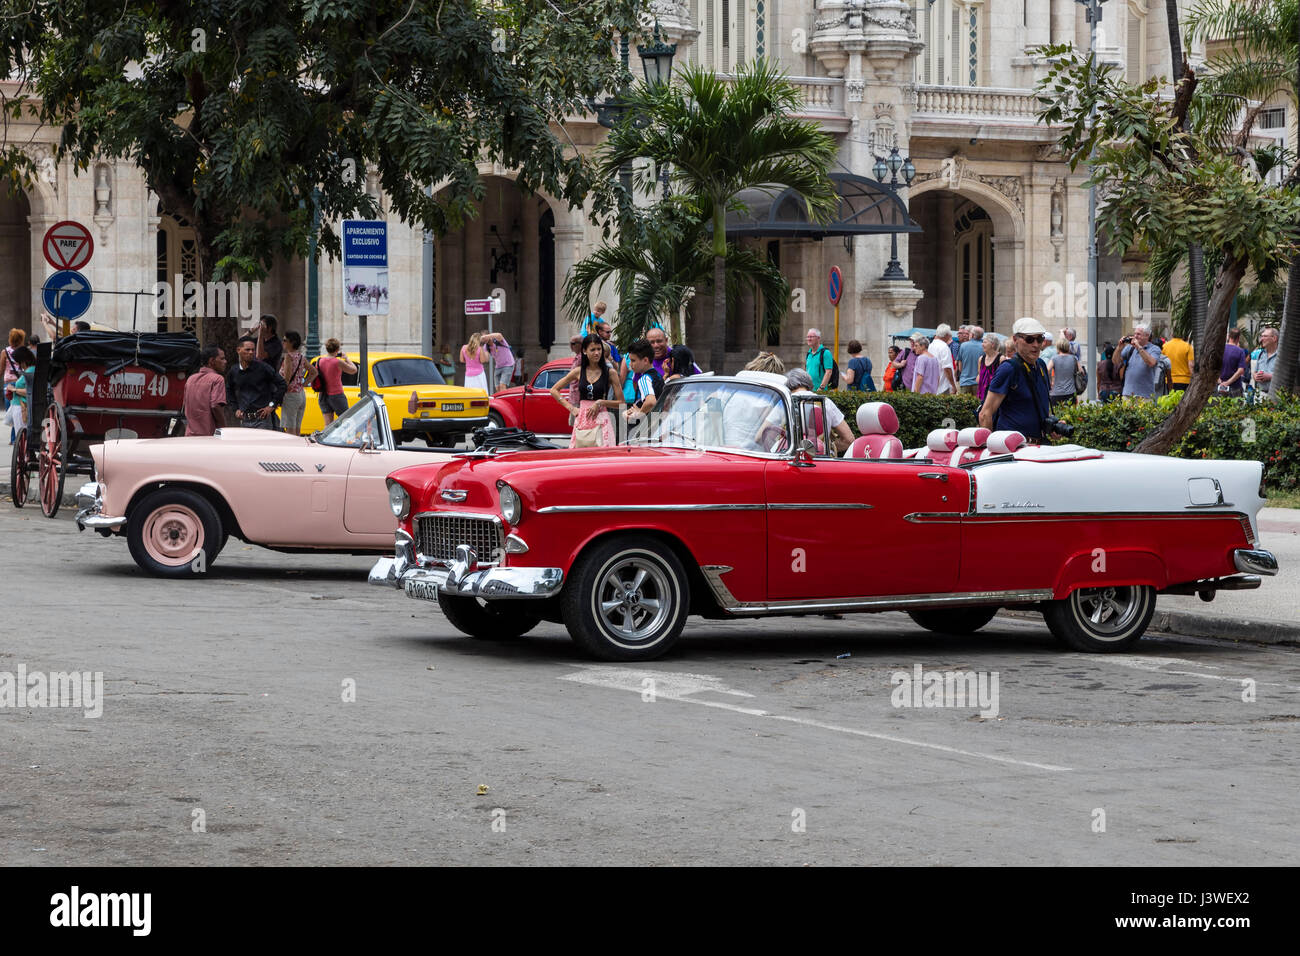 Old classic american cars in the streets of Old Havana Stock Photo ...